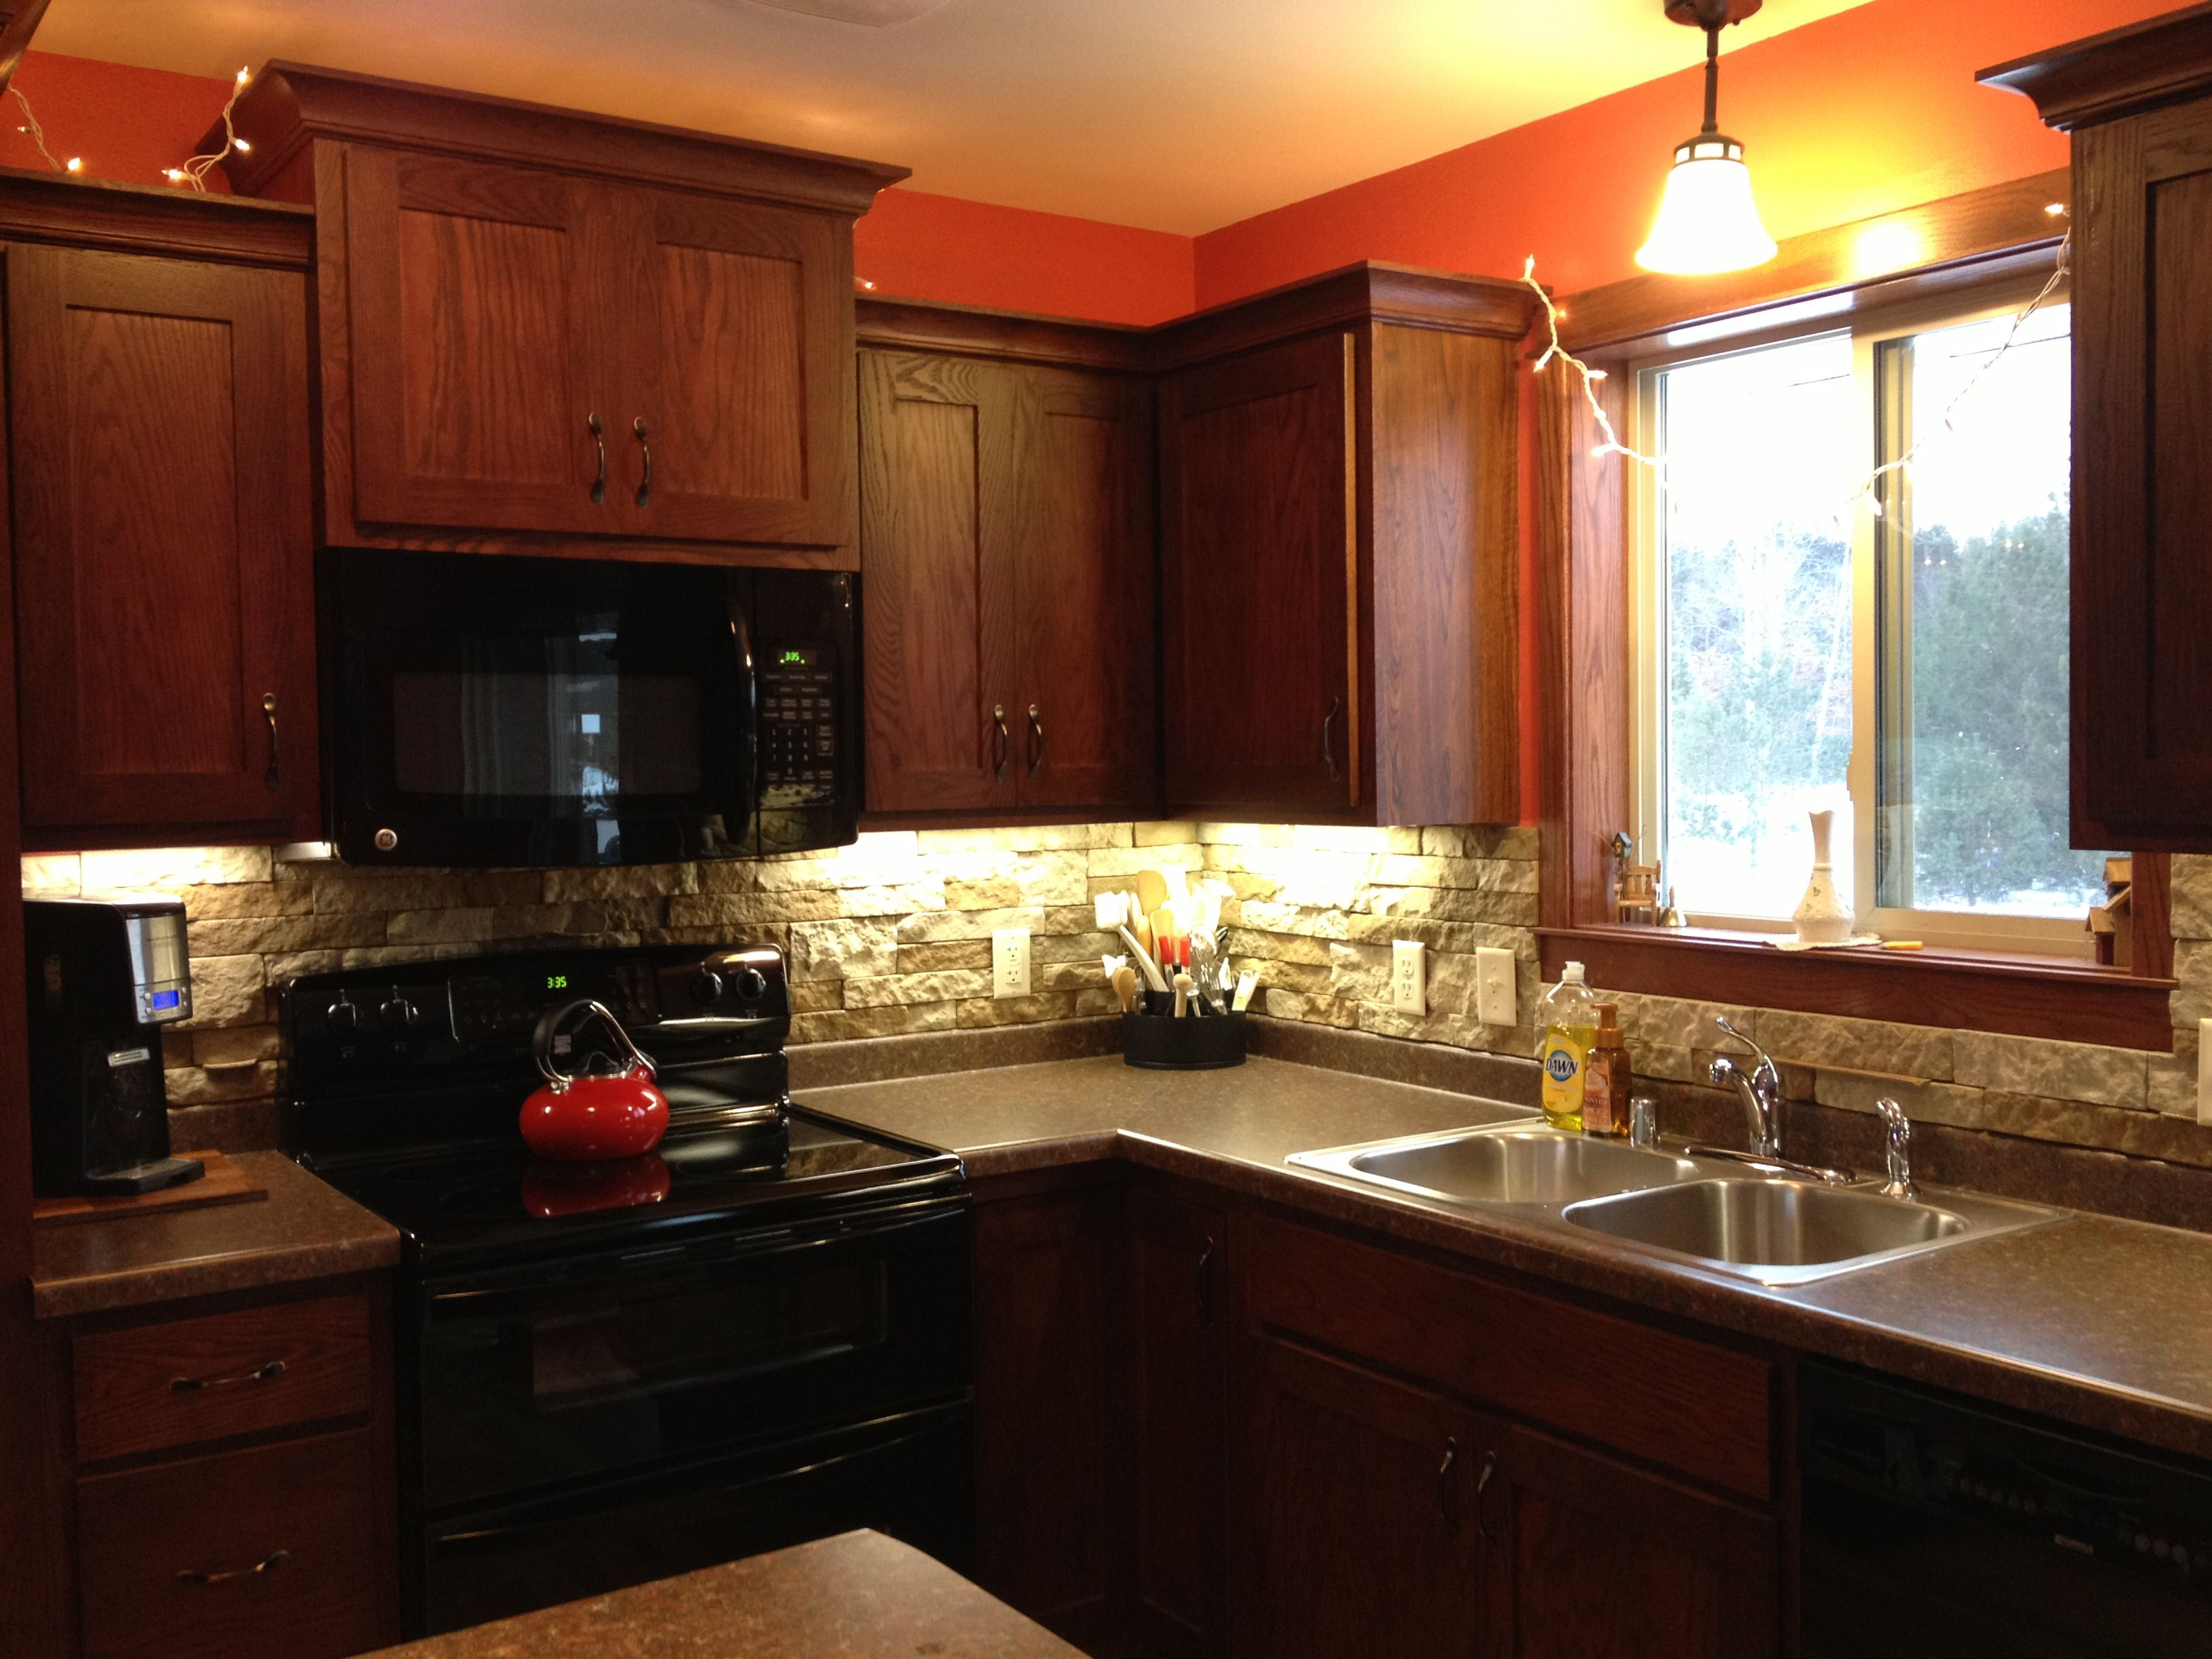 our kitchen backsplash done with airstone from lowe s on kitchen remodeling ideas and designs lowe s id=49031